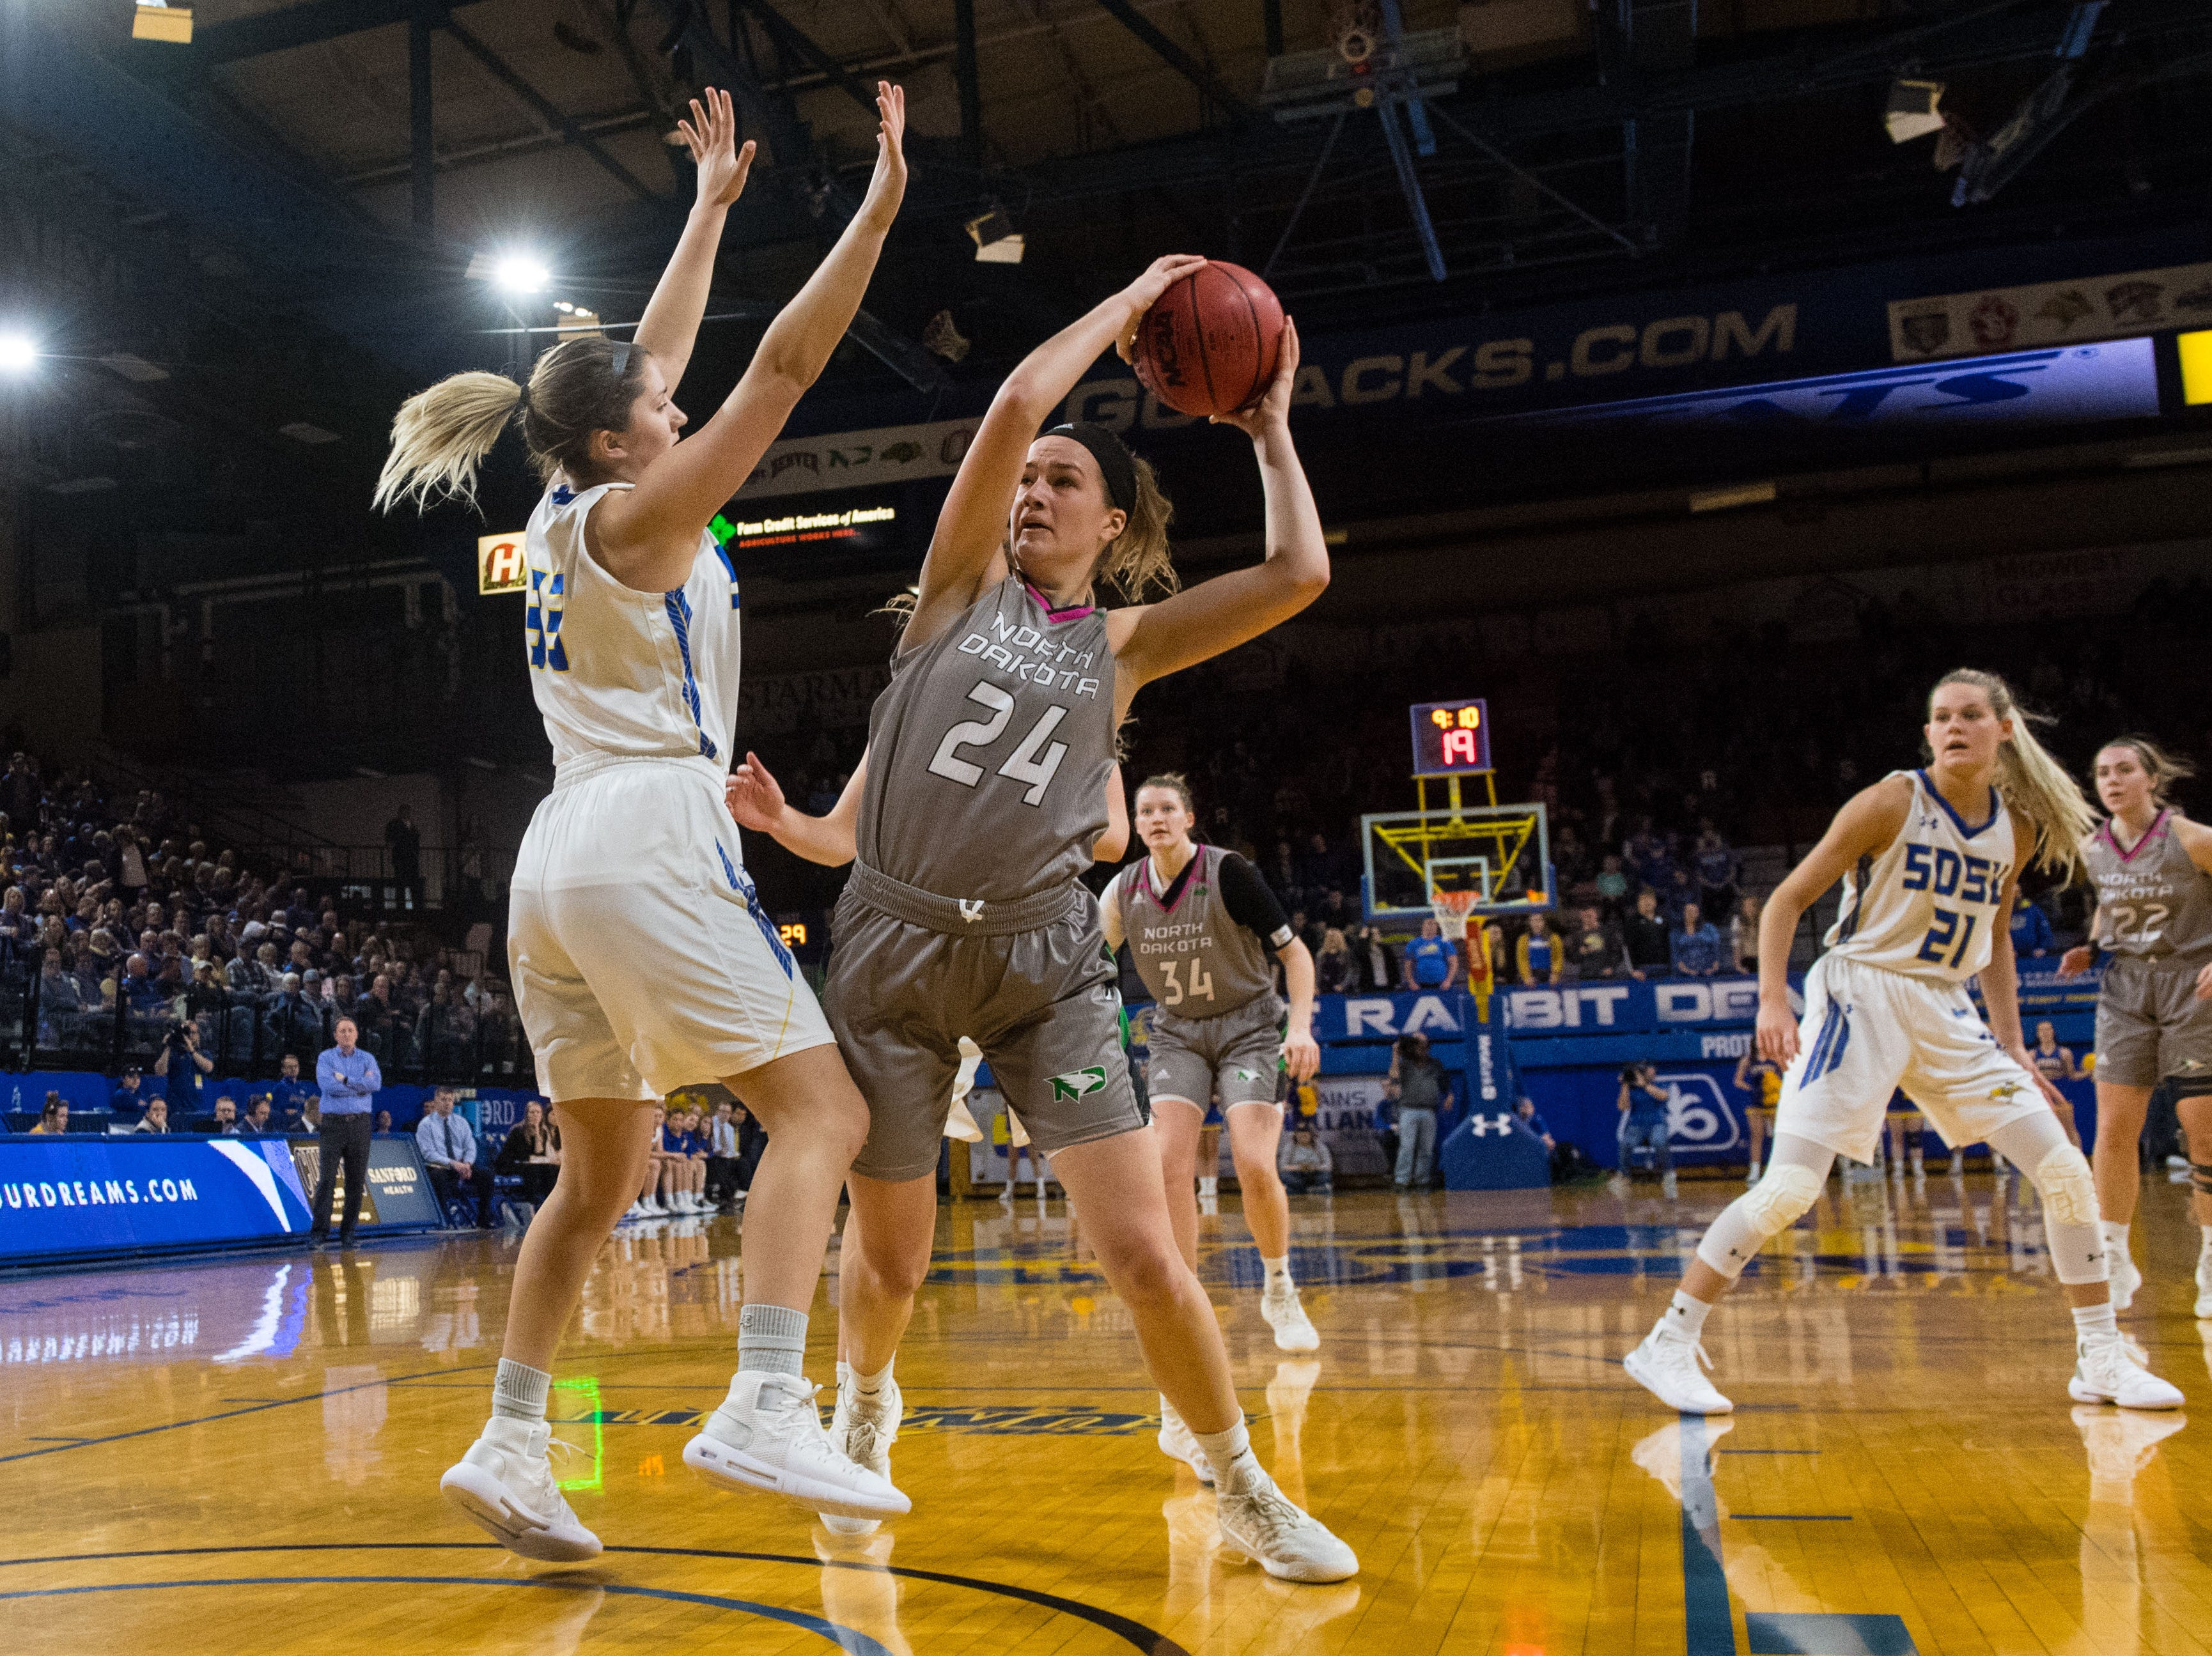 North Dakota's Julia Fleecs (24) looks to pass the ball during a game against South Dakota State in Brookings, S.D., Saturday, Feb. 9, 2019.